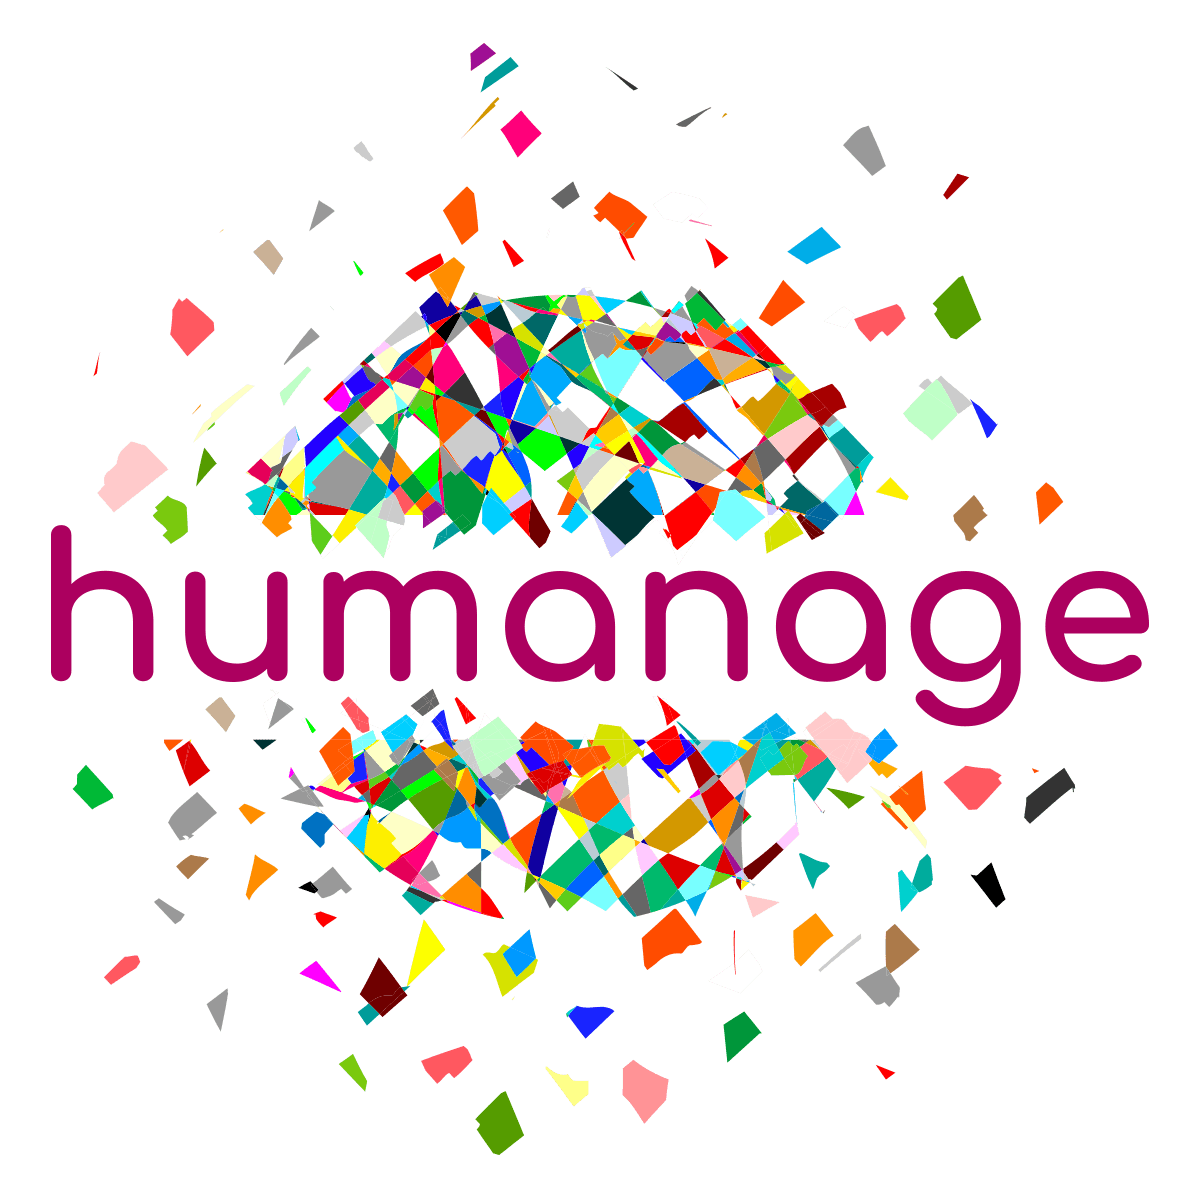 humanage_logo